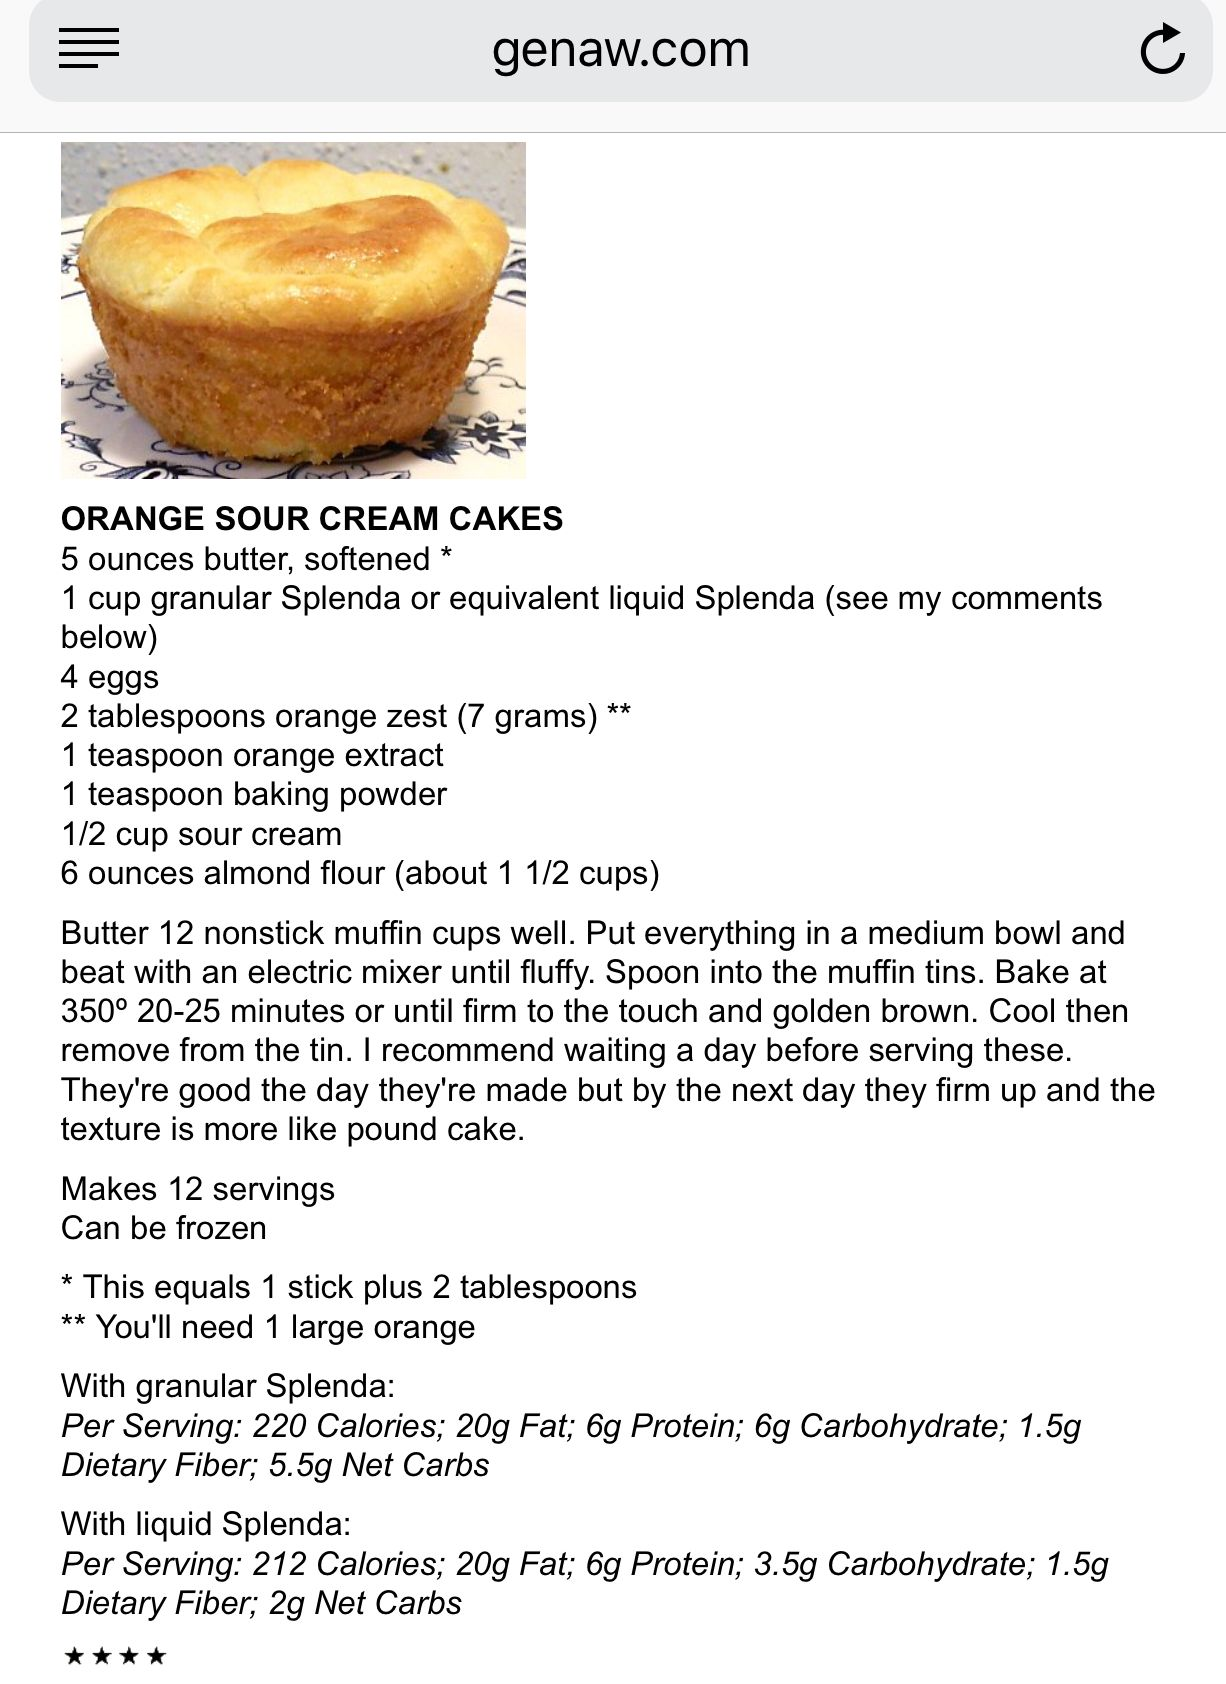 Pin By Maerie Mouze On Recipes Low Carb Sour Cream Cake Recipes Almond Flour